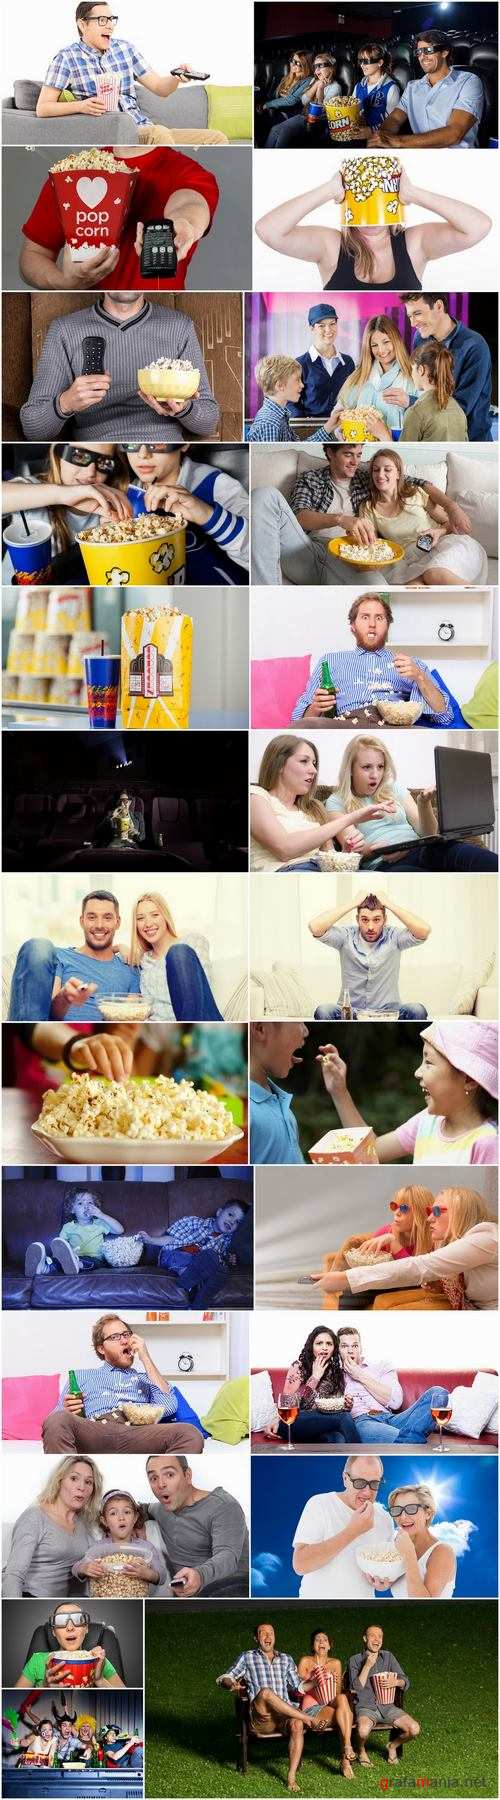 People who eat popcorn 25 HQ Jpeg